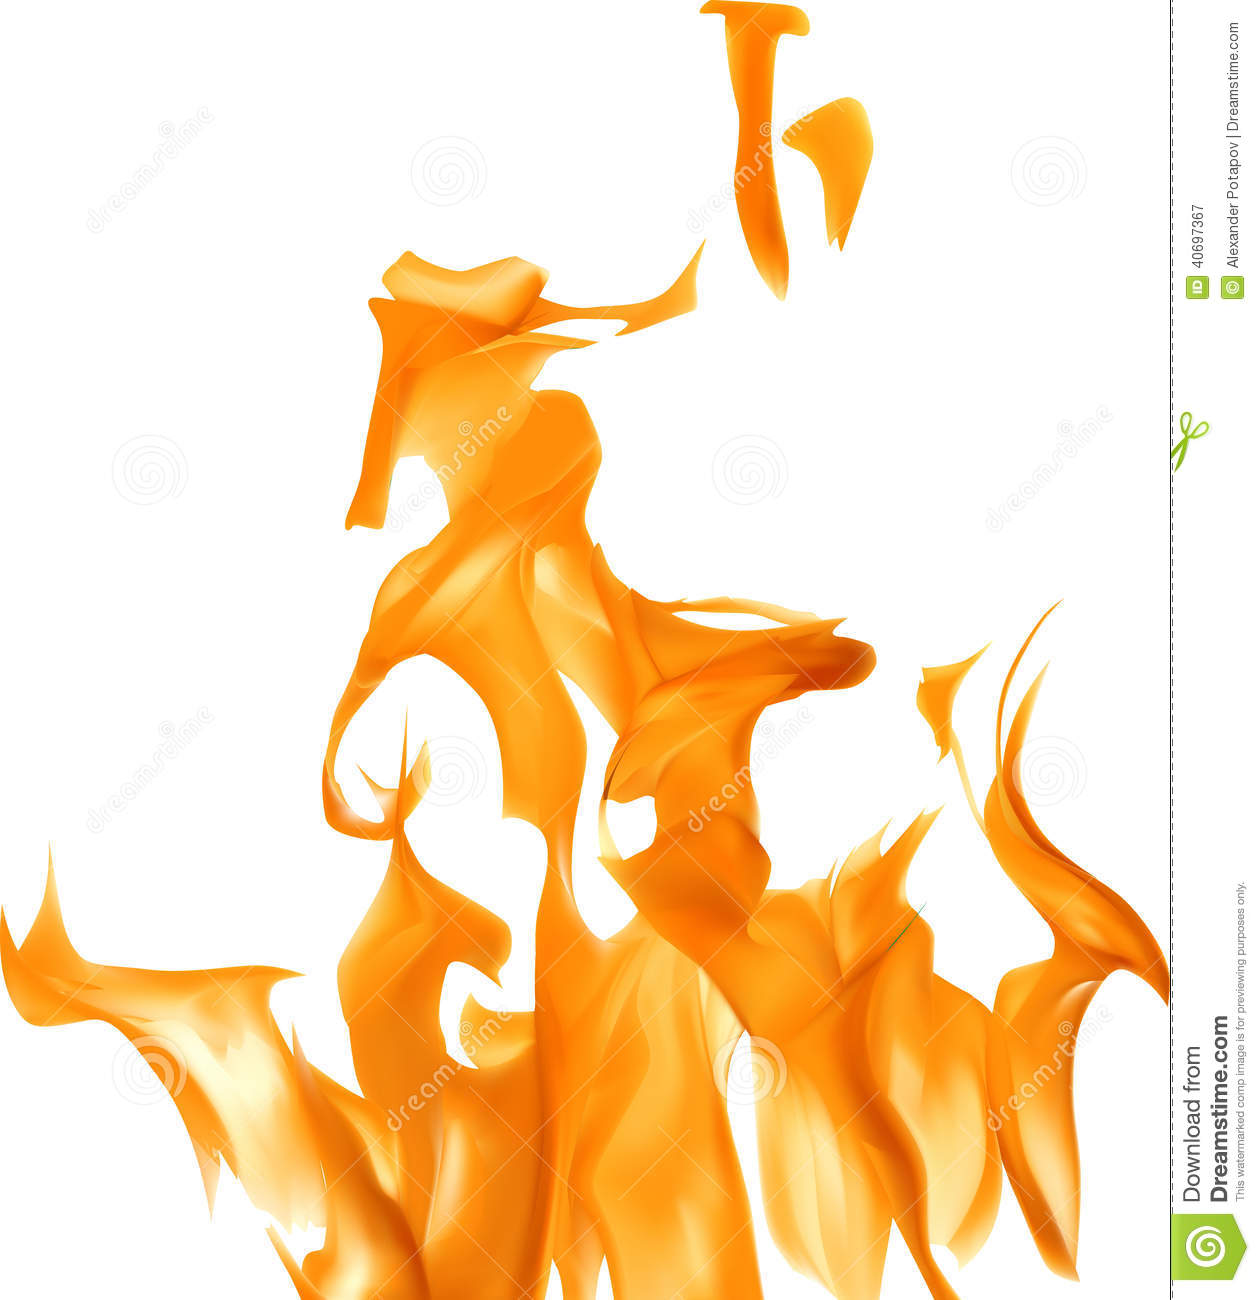 yellow flame on white background illustration stock vector